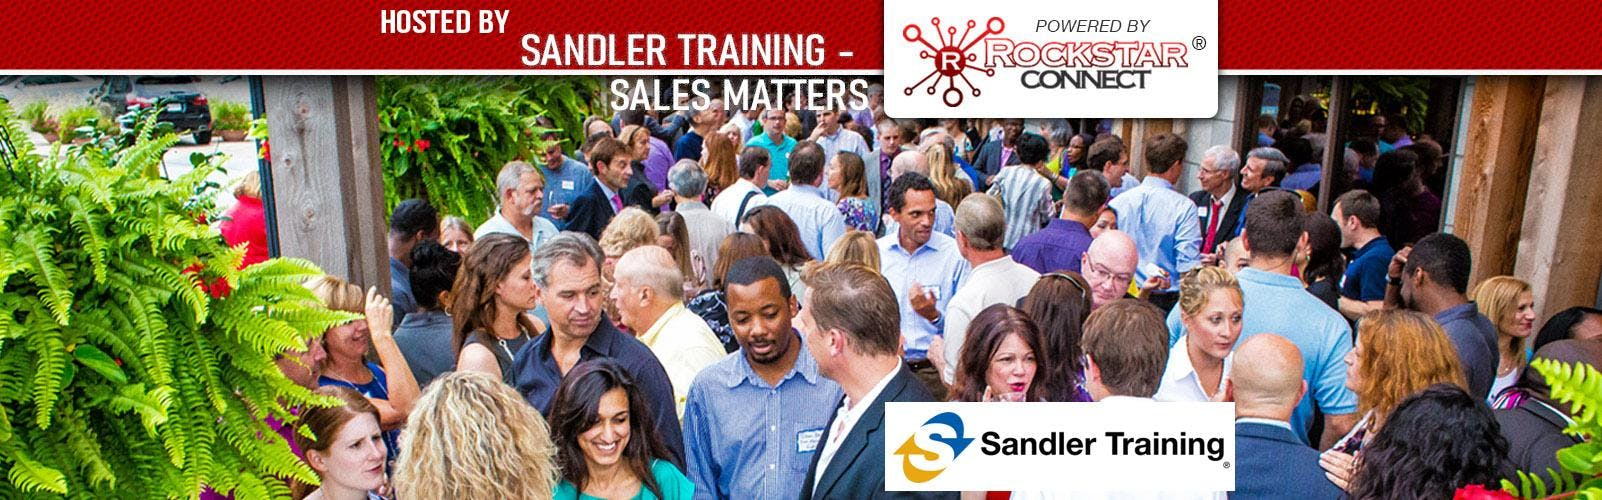 Free Raleigh Business & Sales Pros Rockstar Connect event (July, Raleigh)